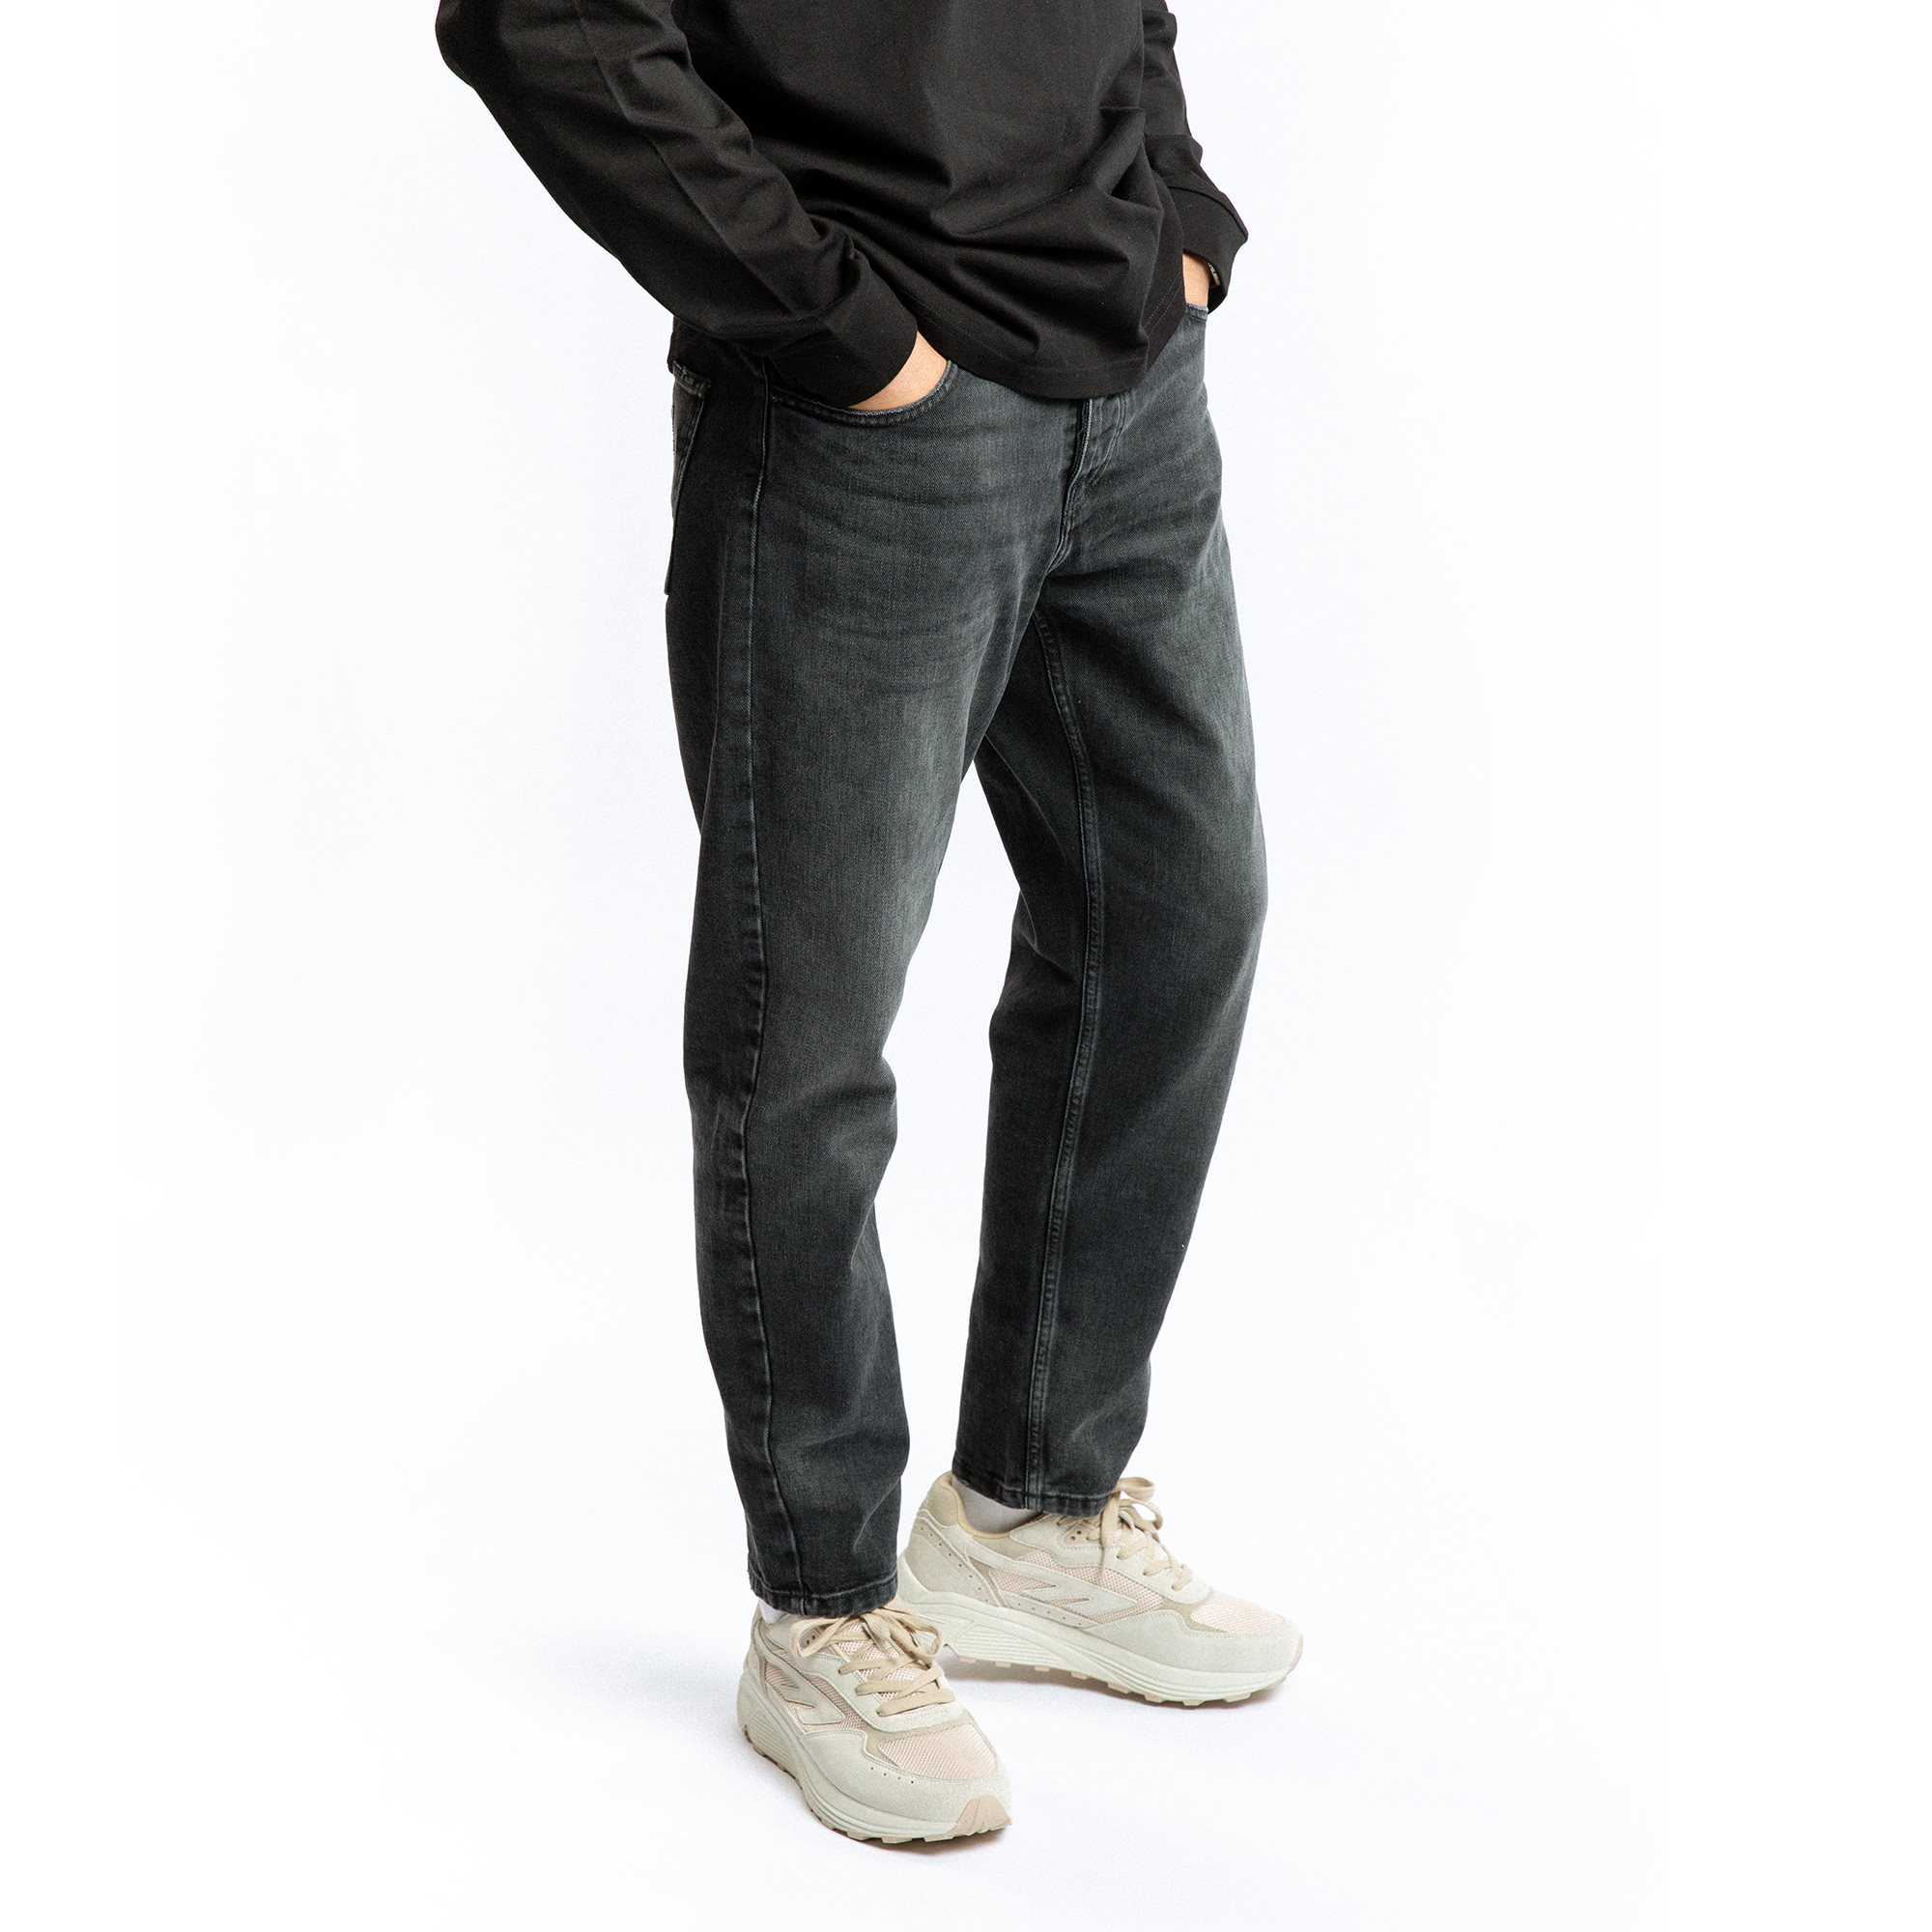 Jeans - Relaxed fit - Svart